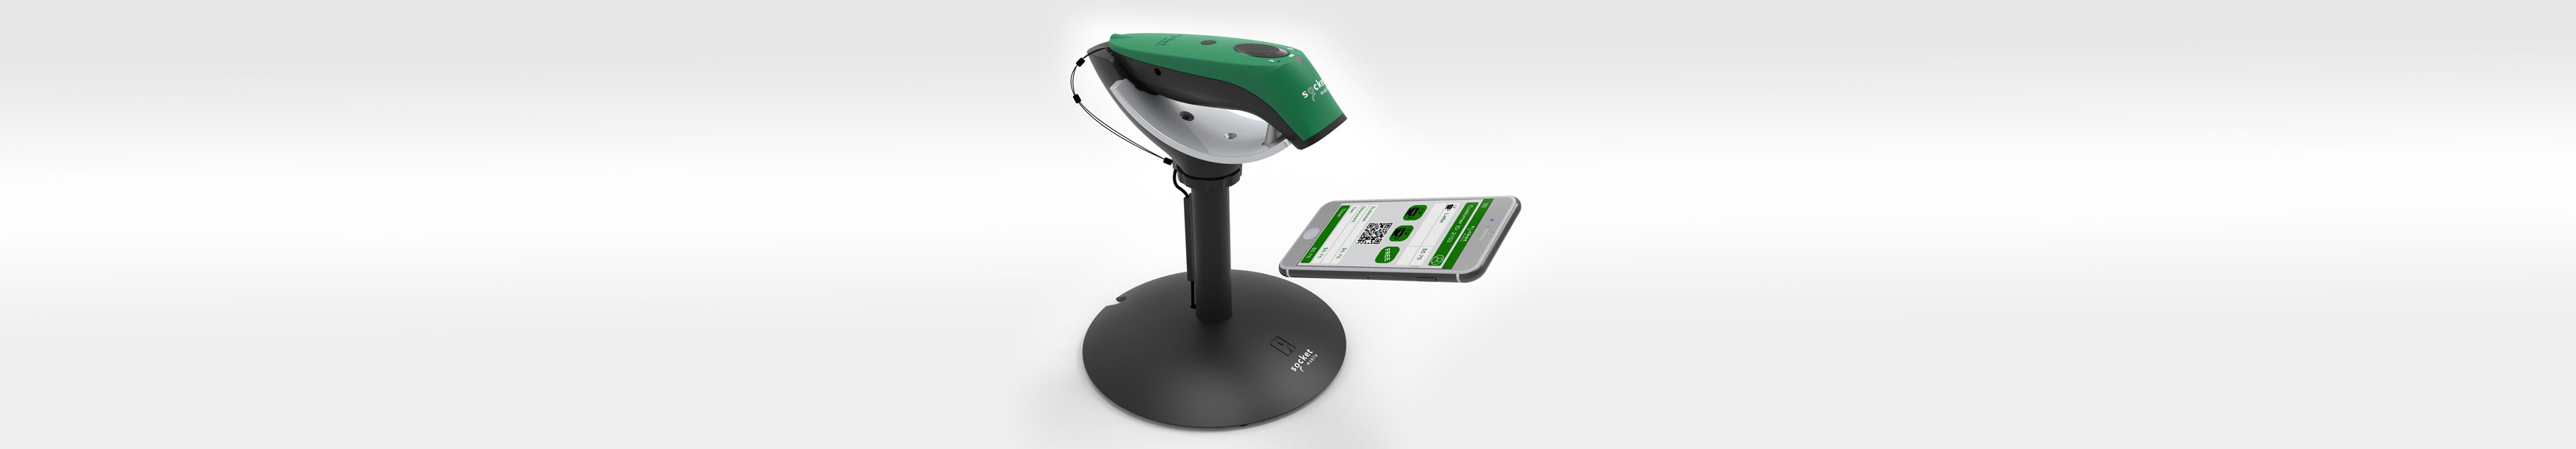 Charging-Stand-with-Security-Feature-Use-Case